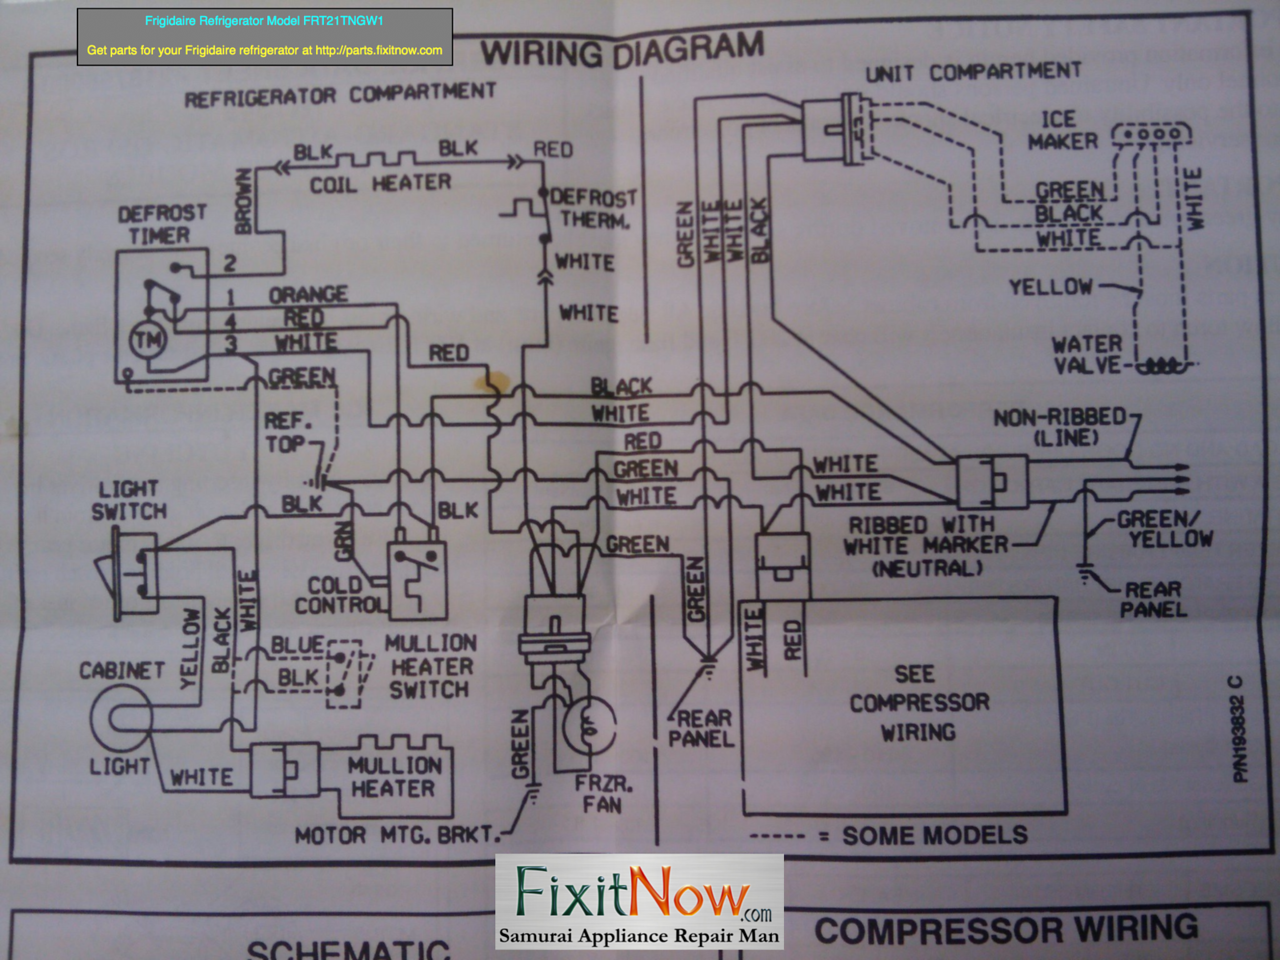 4927632513_66c123c922_o X2 wiring diagram for ge refrigerator readingrat net ge electric dryer wiring diagram at bayanpartner.co